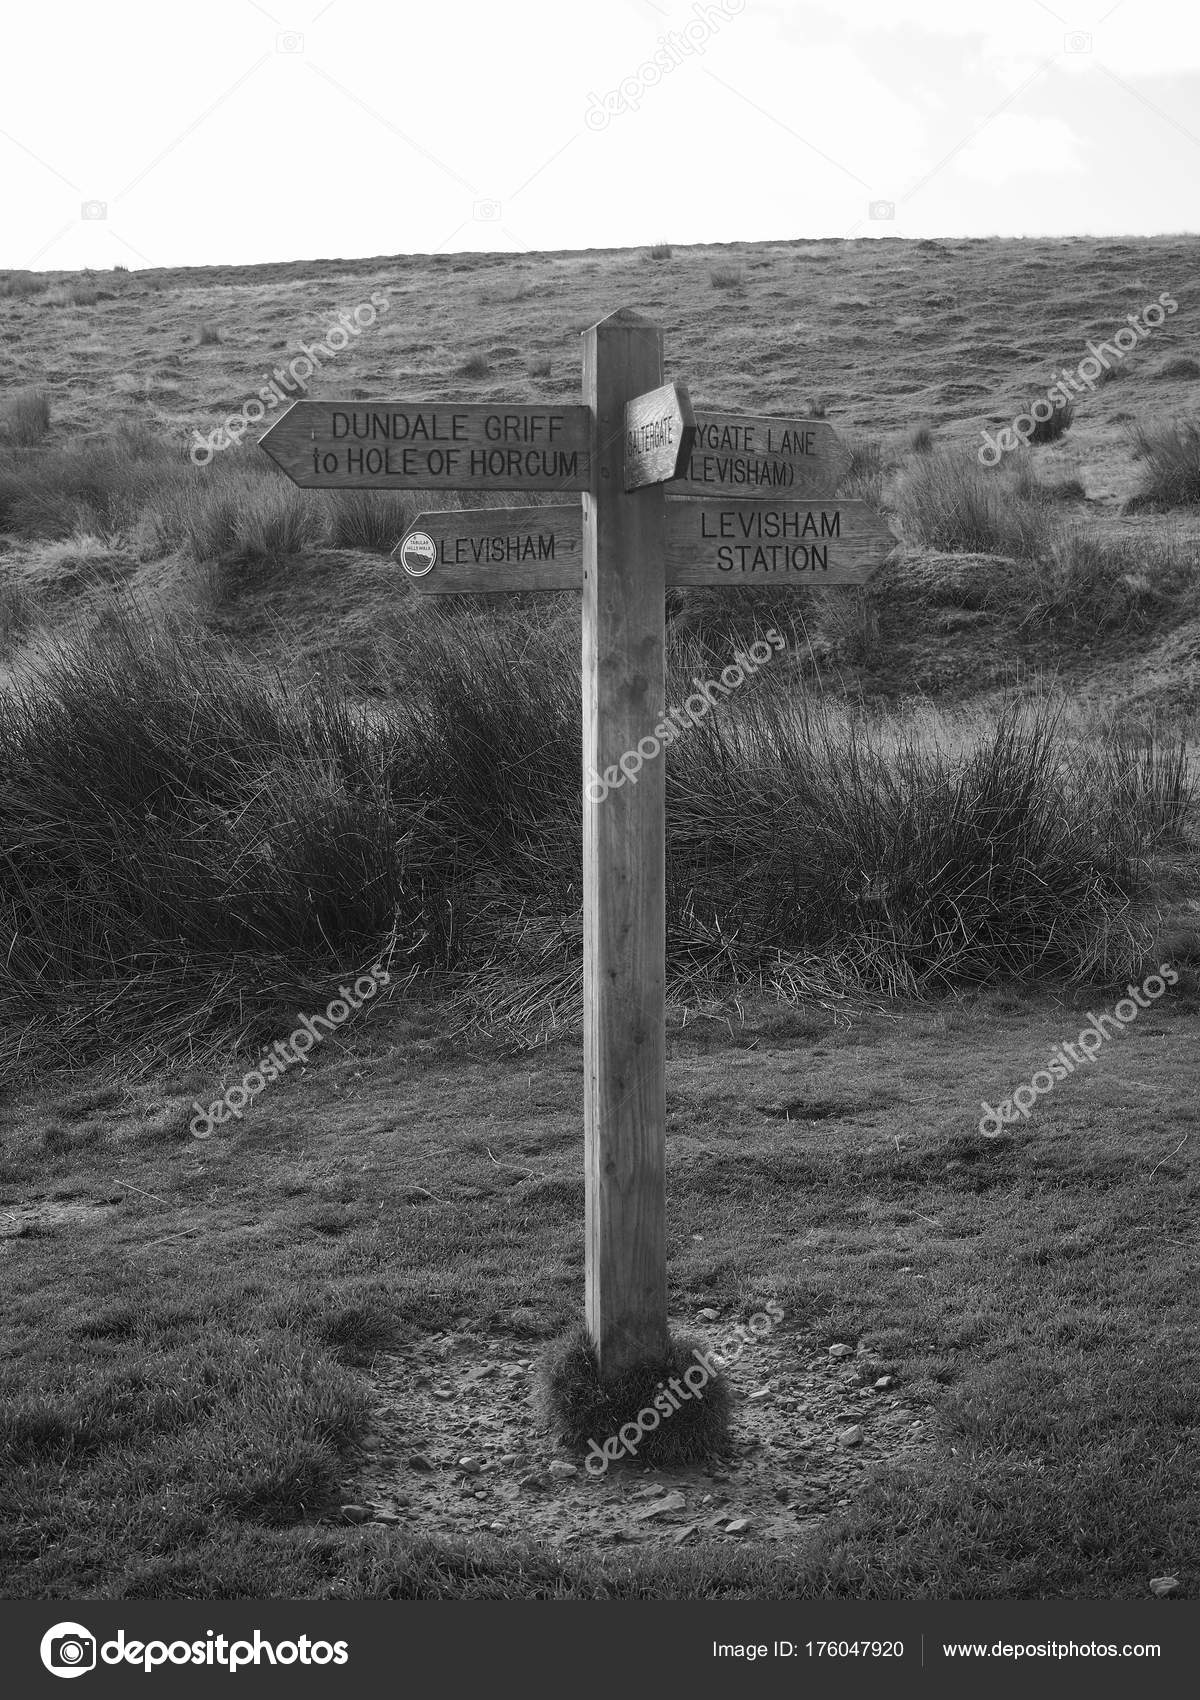 Signpost on walking paths shot in black and white near hole of horcum and levisham in north york moors national park yorkshire